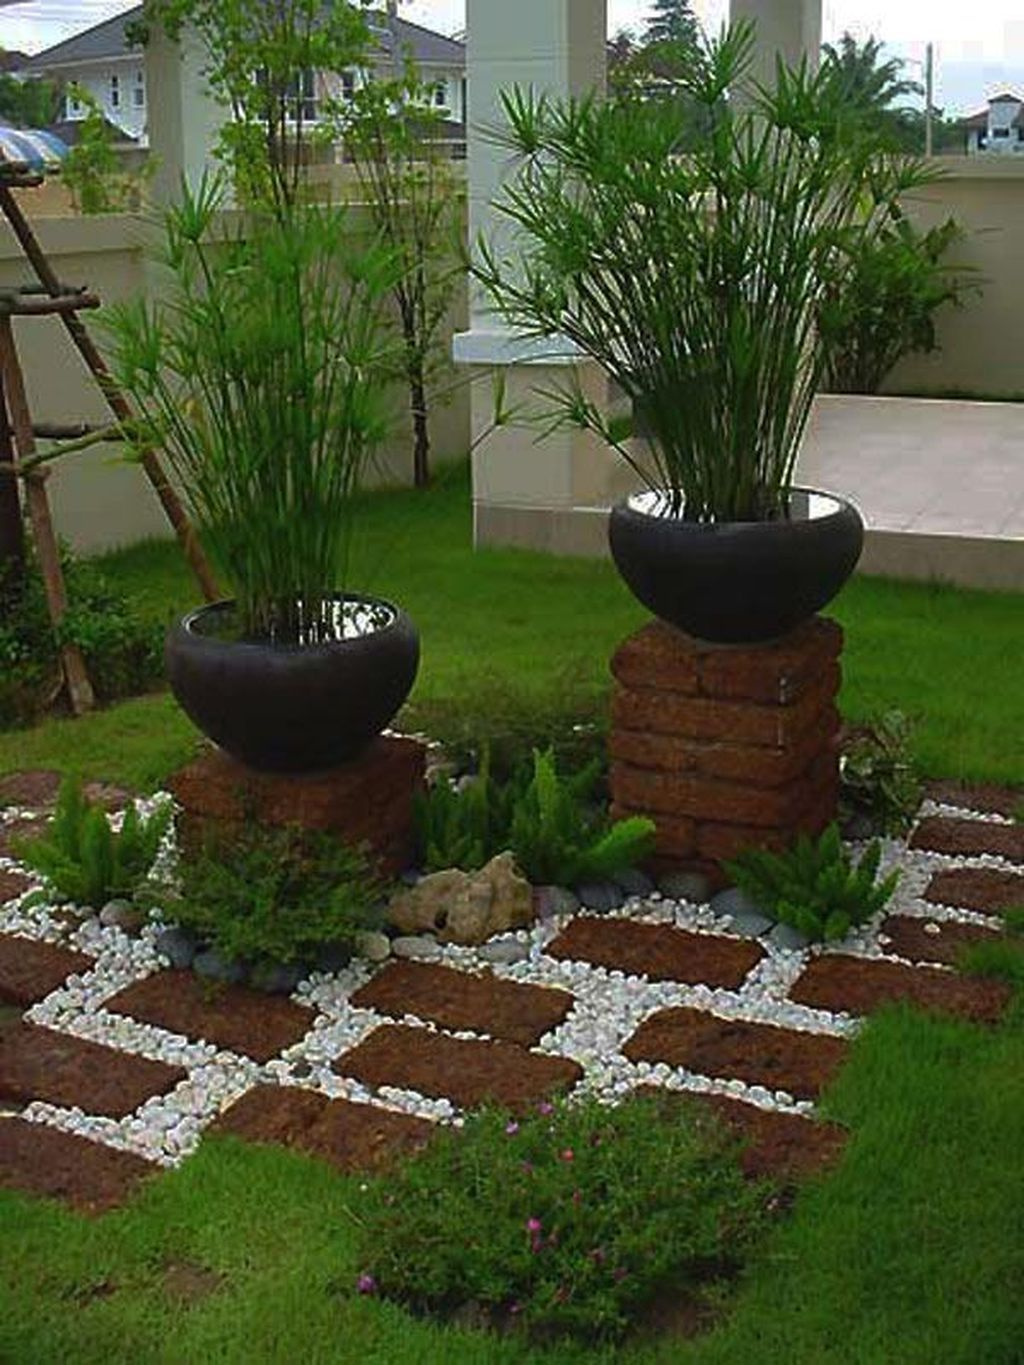 35 Adorable Garden Design Ideas With Low Maintenance In 2020 Small Backyard Gardens Small Backyard Landscaping Brick Garden